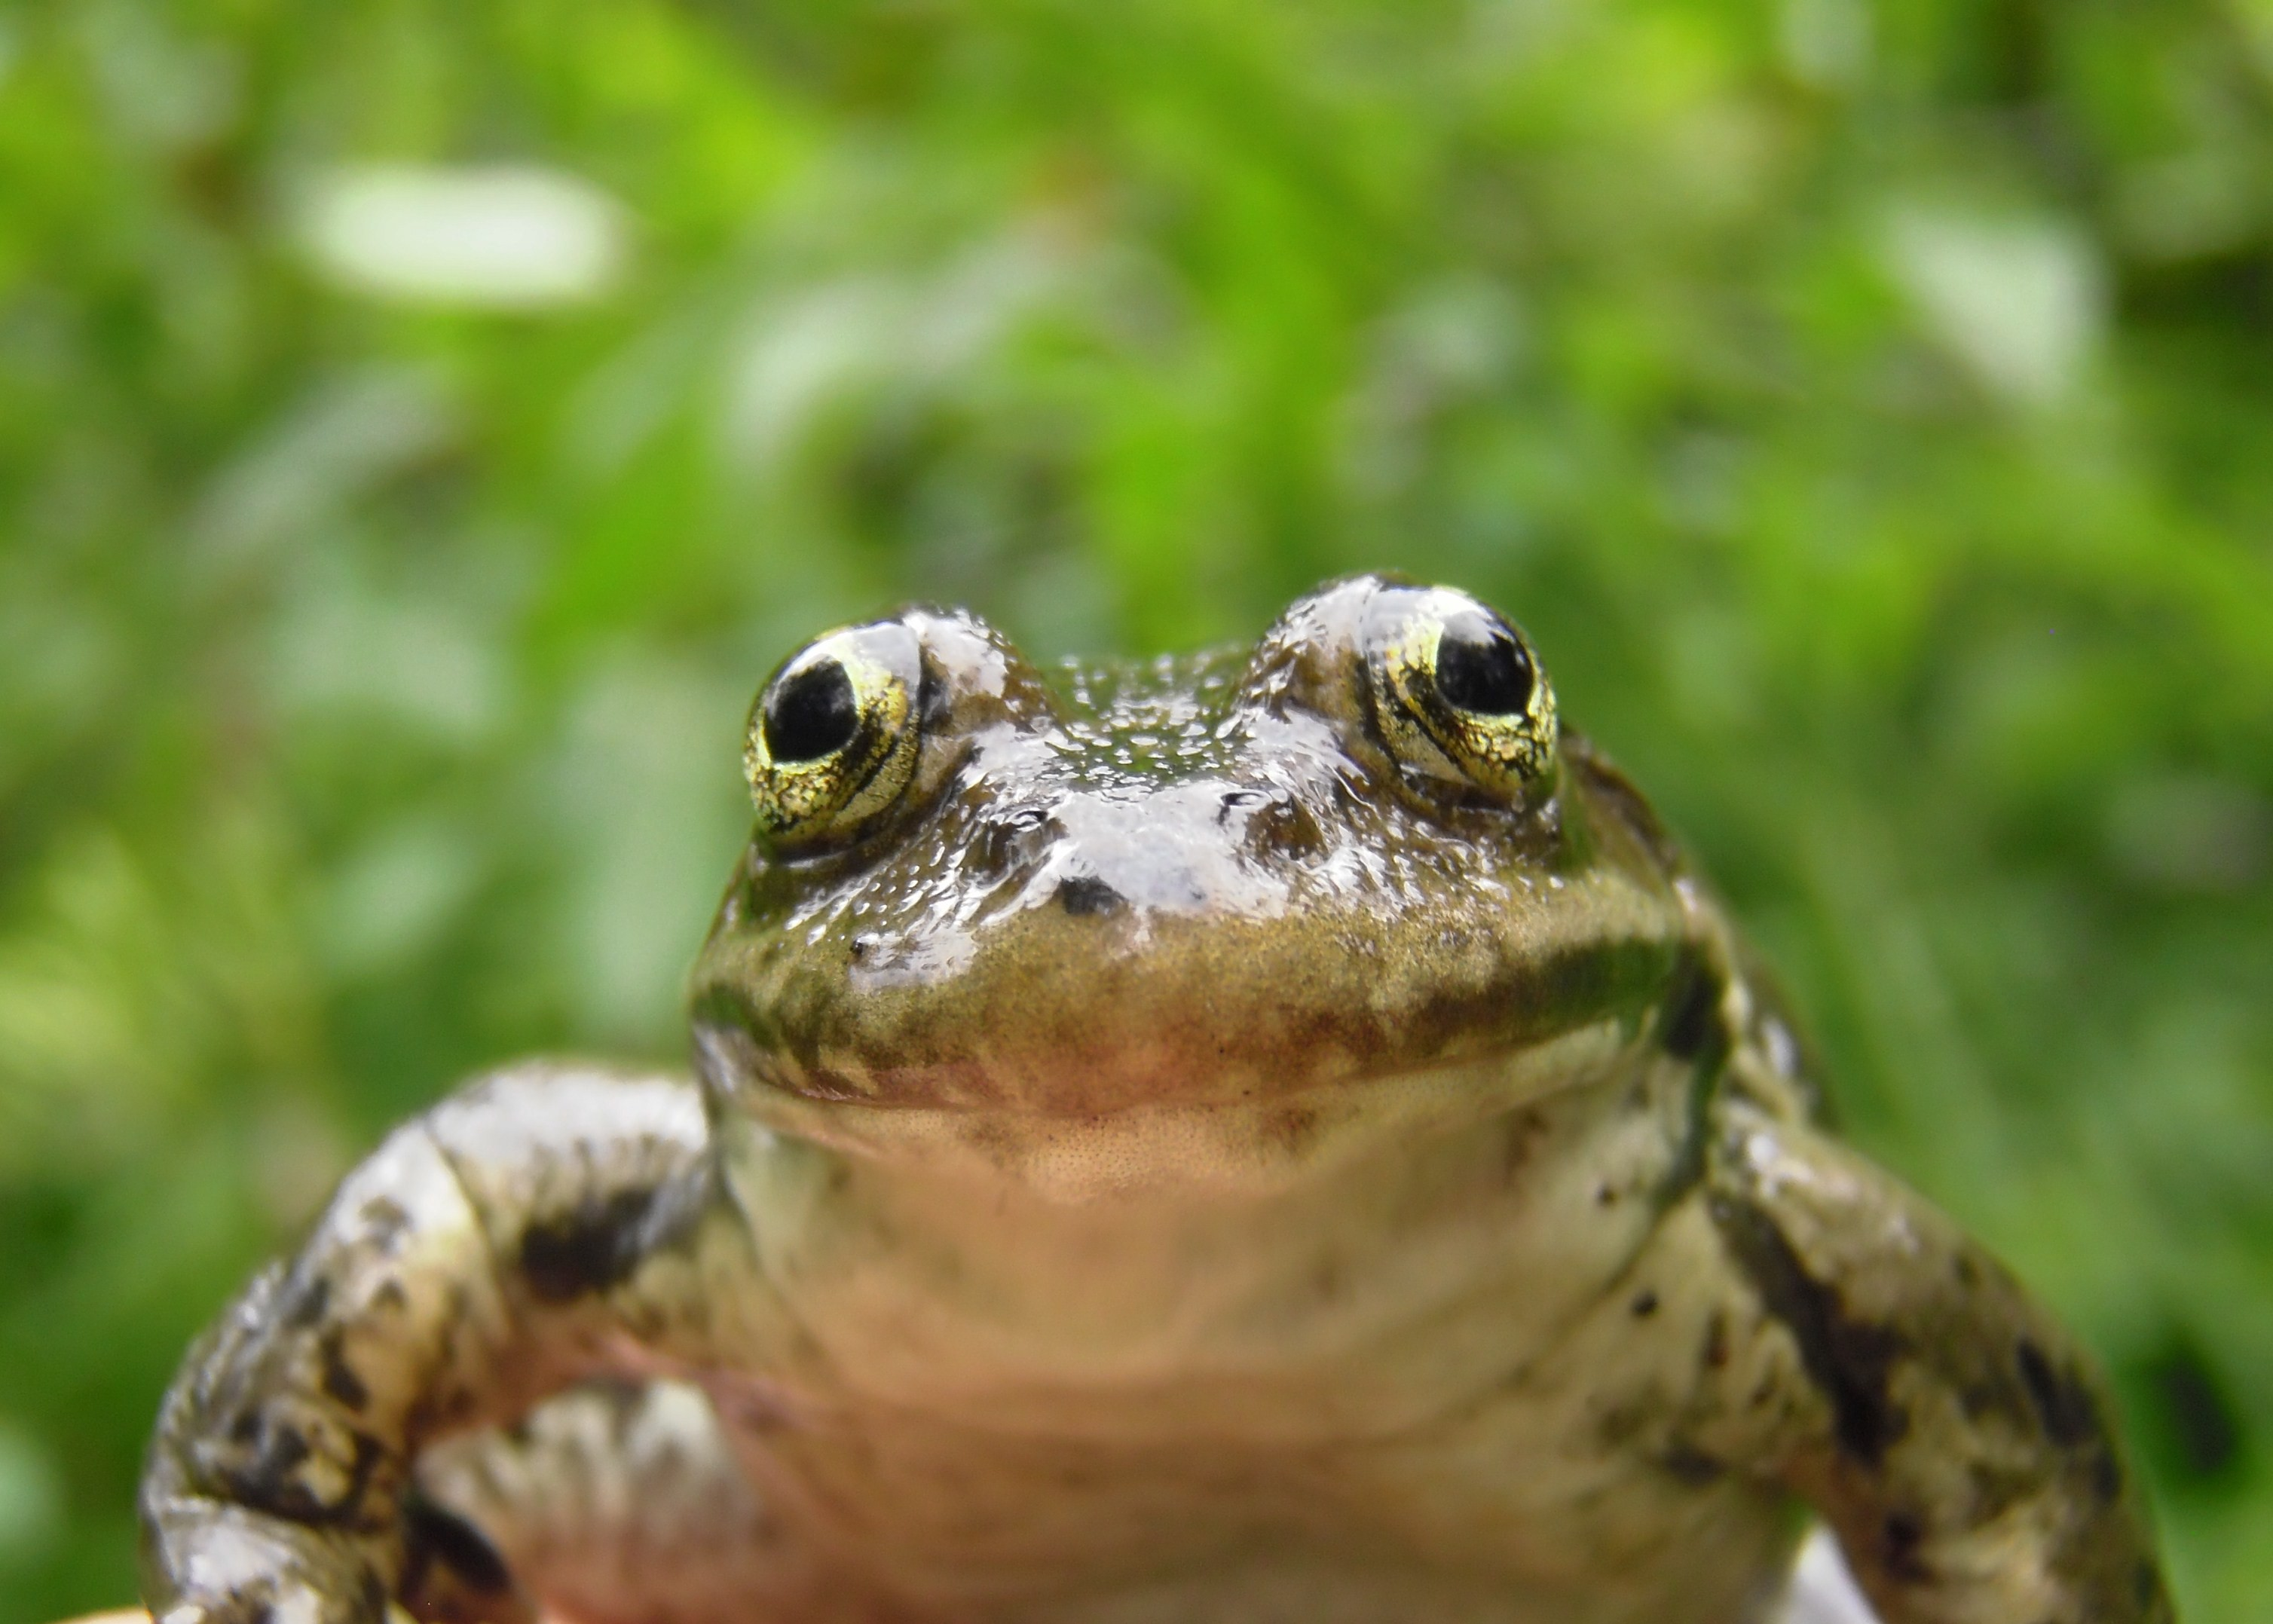 A close-up of an olive green frog, that has a light colored underside, and bulgy gold eyes.